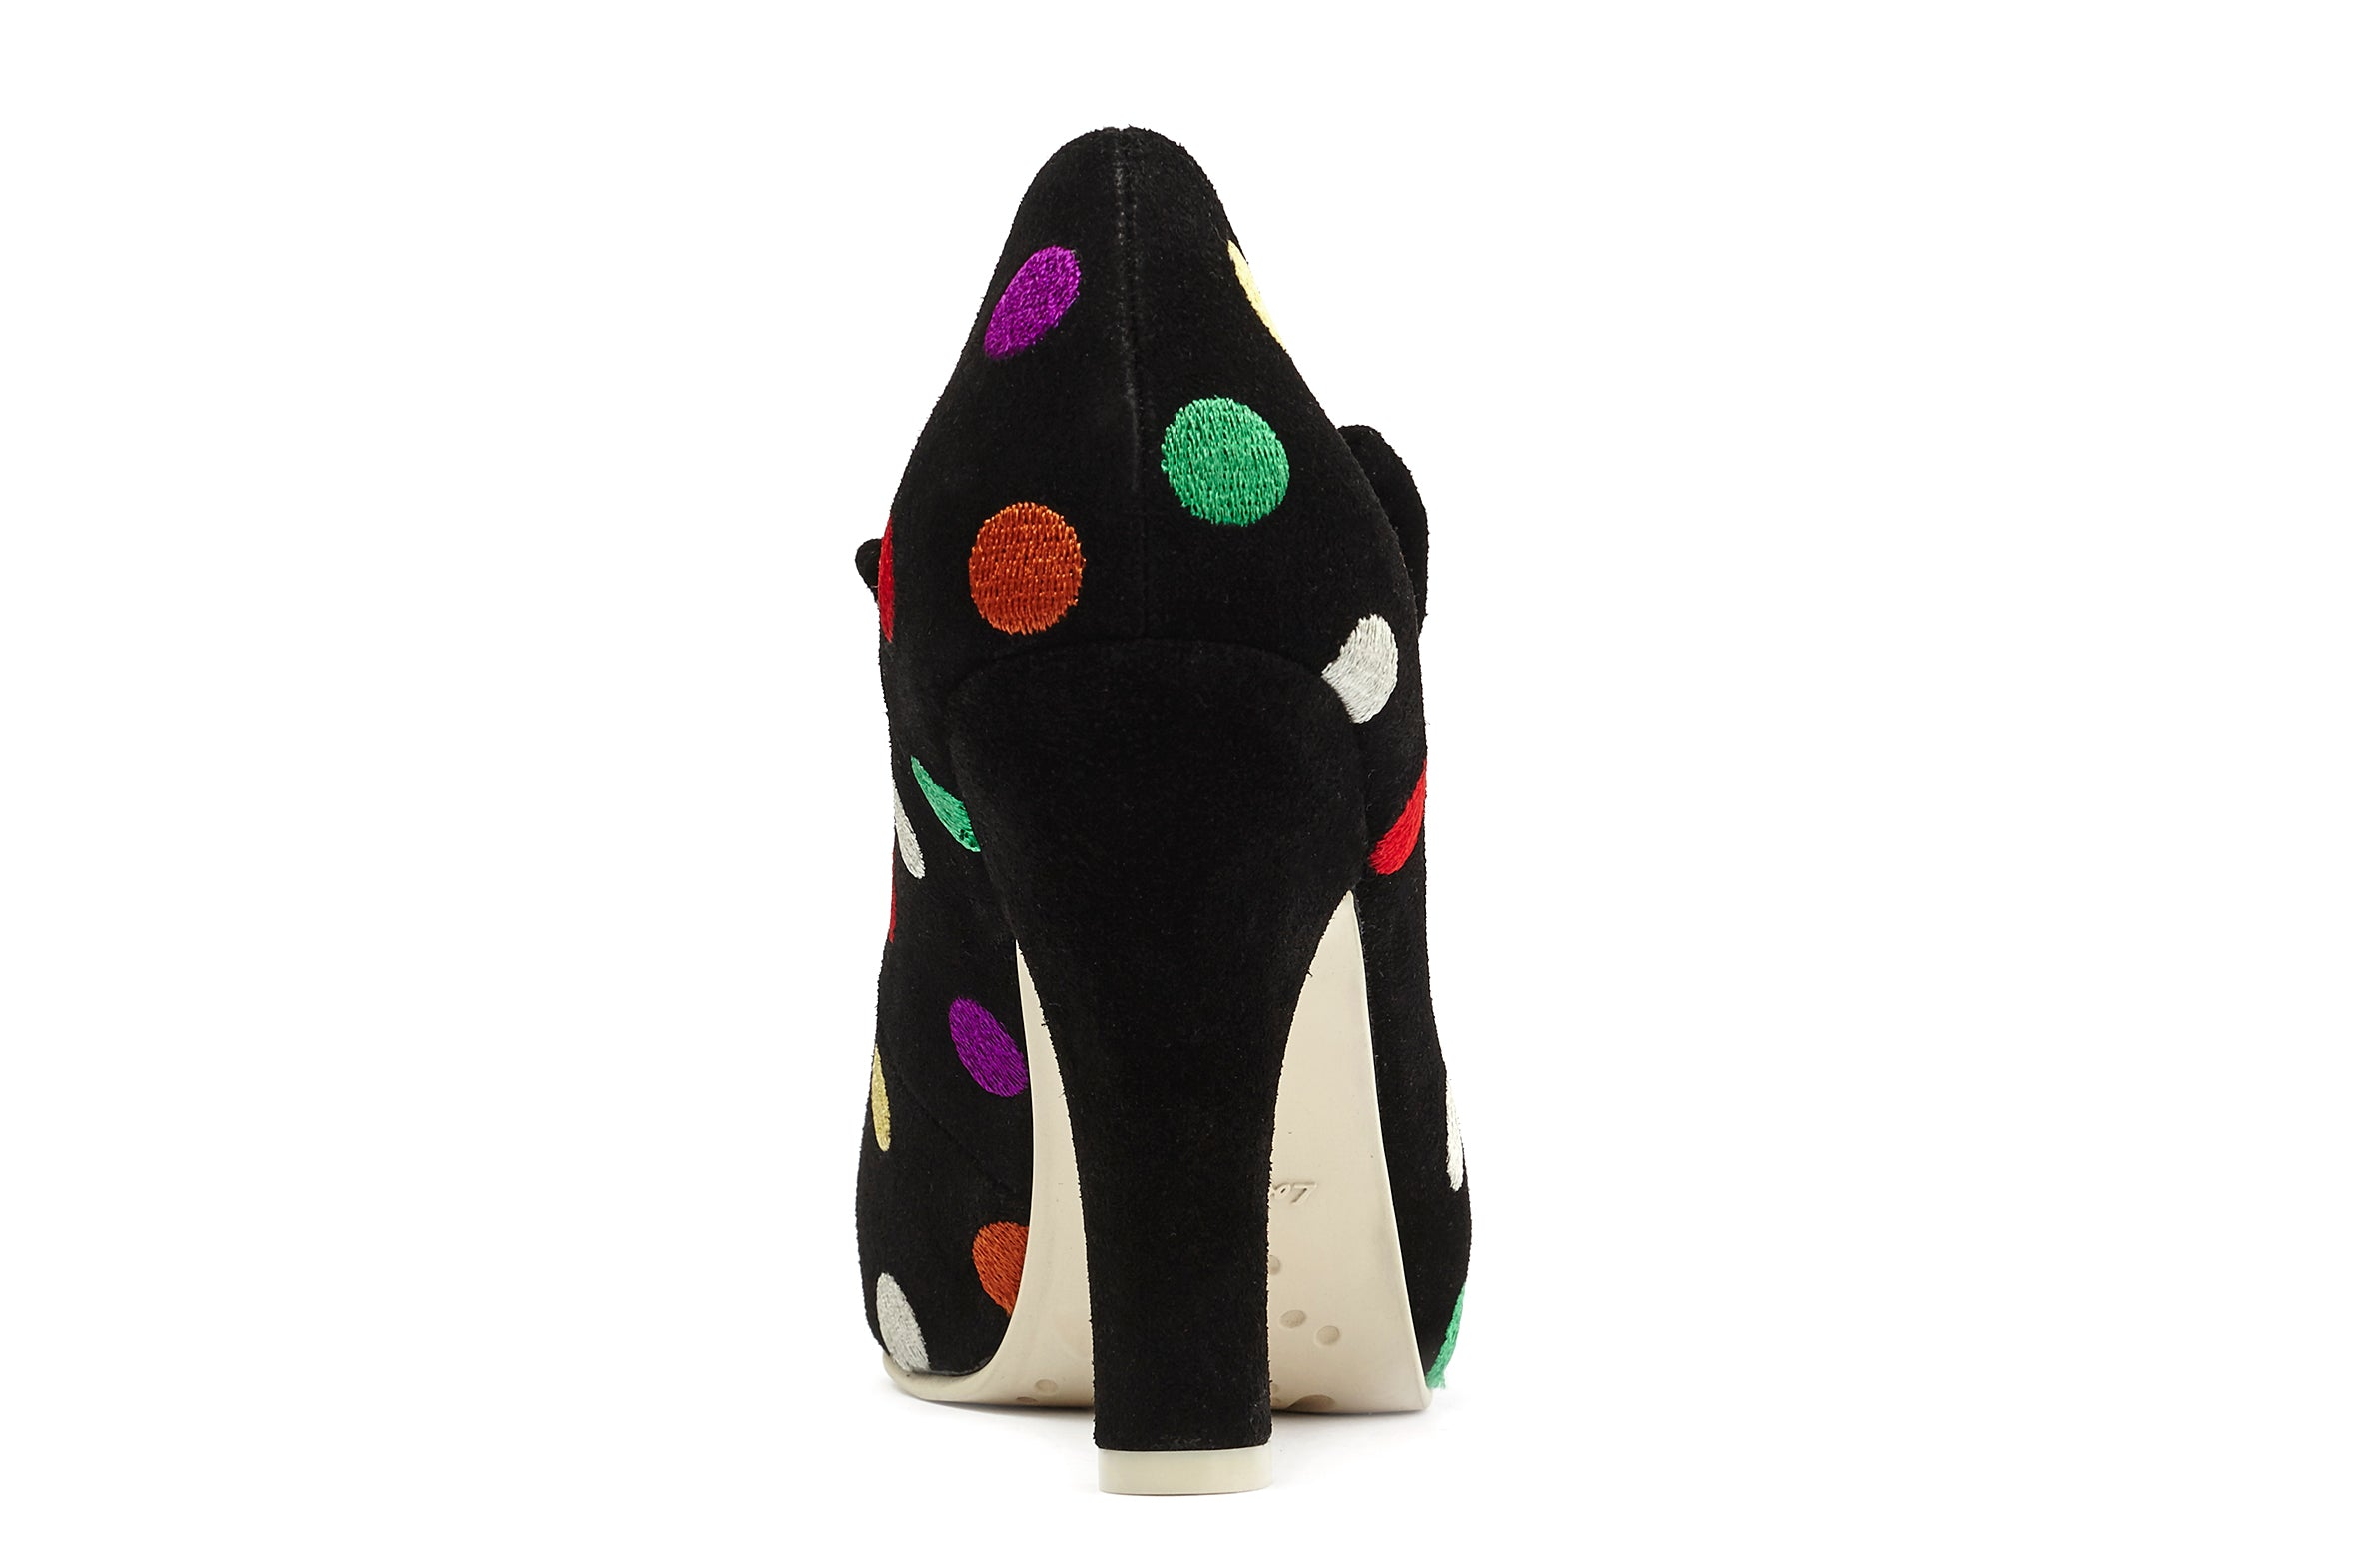 Pumps Comfy High Heels Angie Suede Dots Multi - Lola Ramona - Bombus